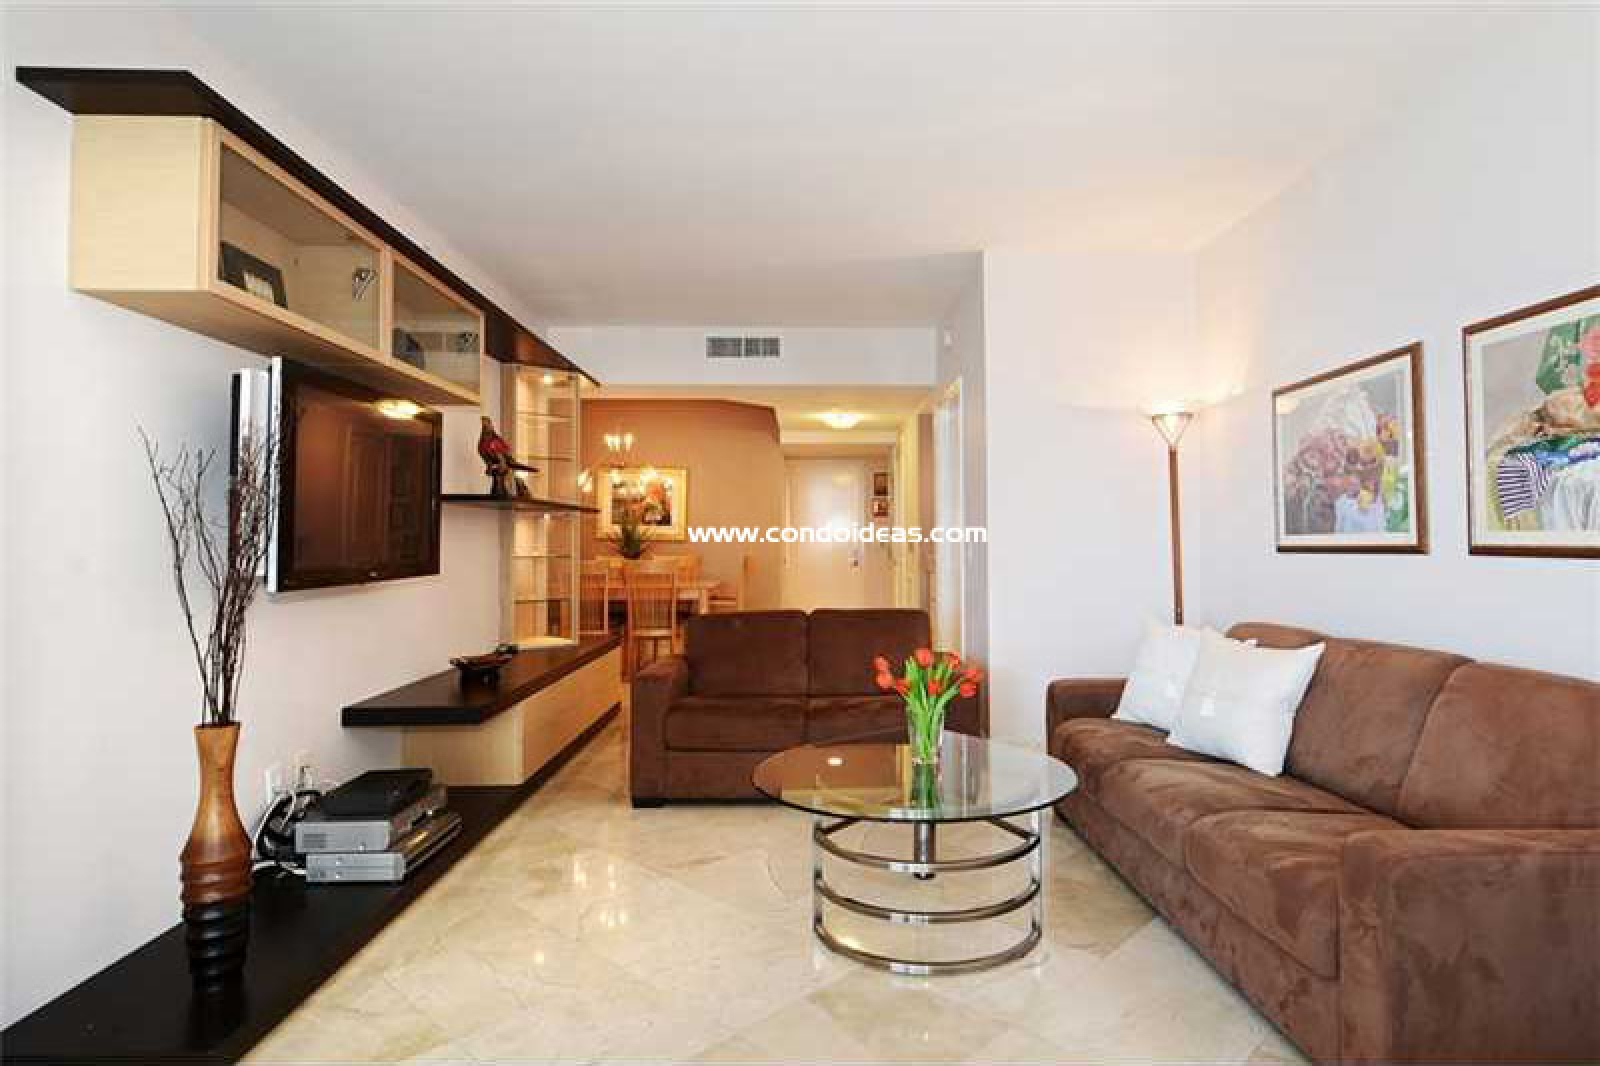 Green Diamond condo